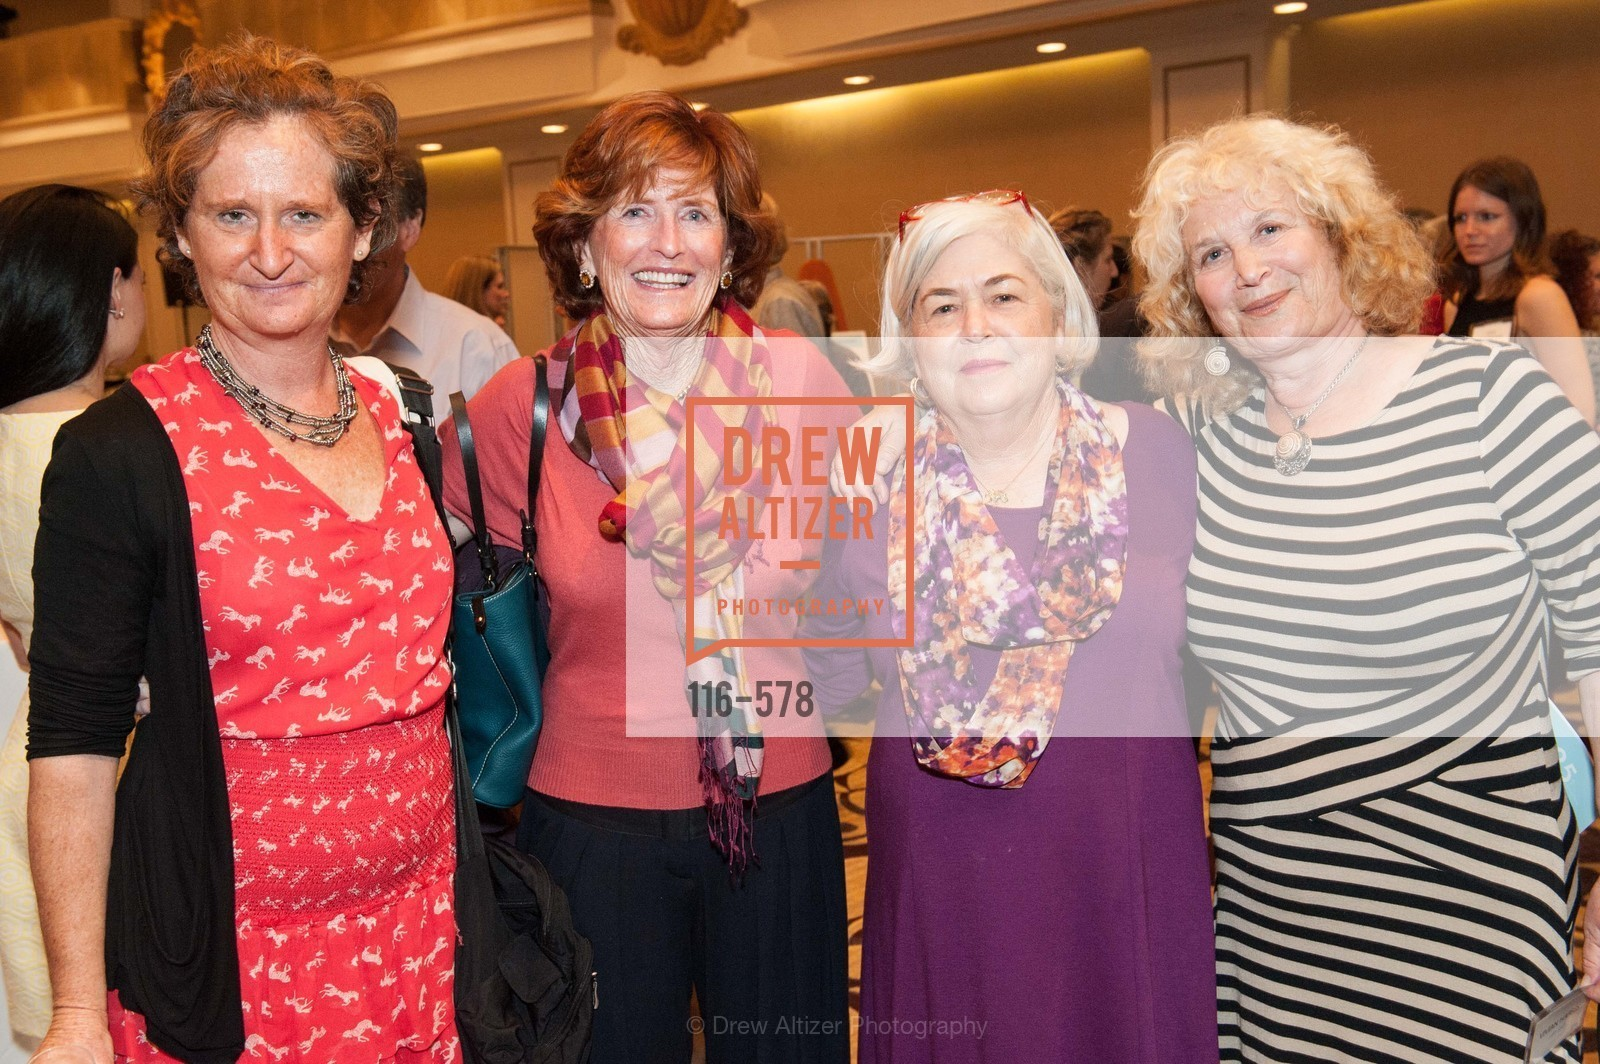 Theresa Ryan, Lee Heagarty, Molly Wilkinson, Vivian Harris, HOMELESS PRENATAL Annual Luncheon 2014, US, October 1st, 2014,Drew Altizer, Drew Altizer Photography, full-service event agency, private events, San Francisco photographer, photographer California